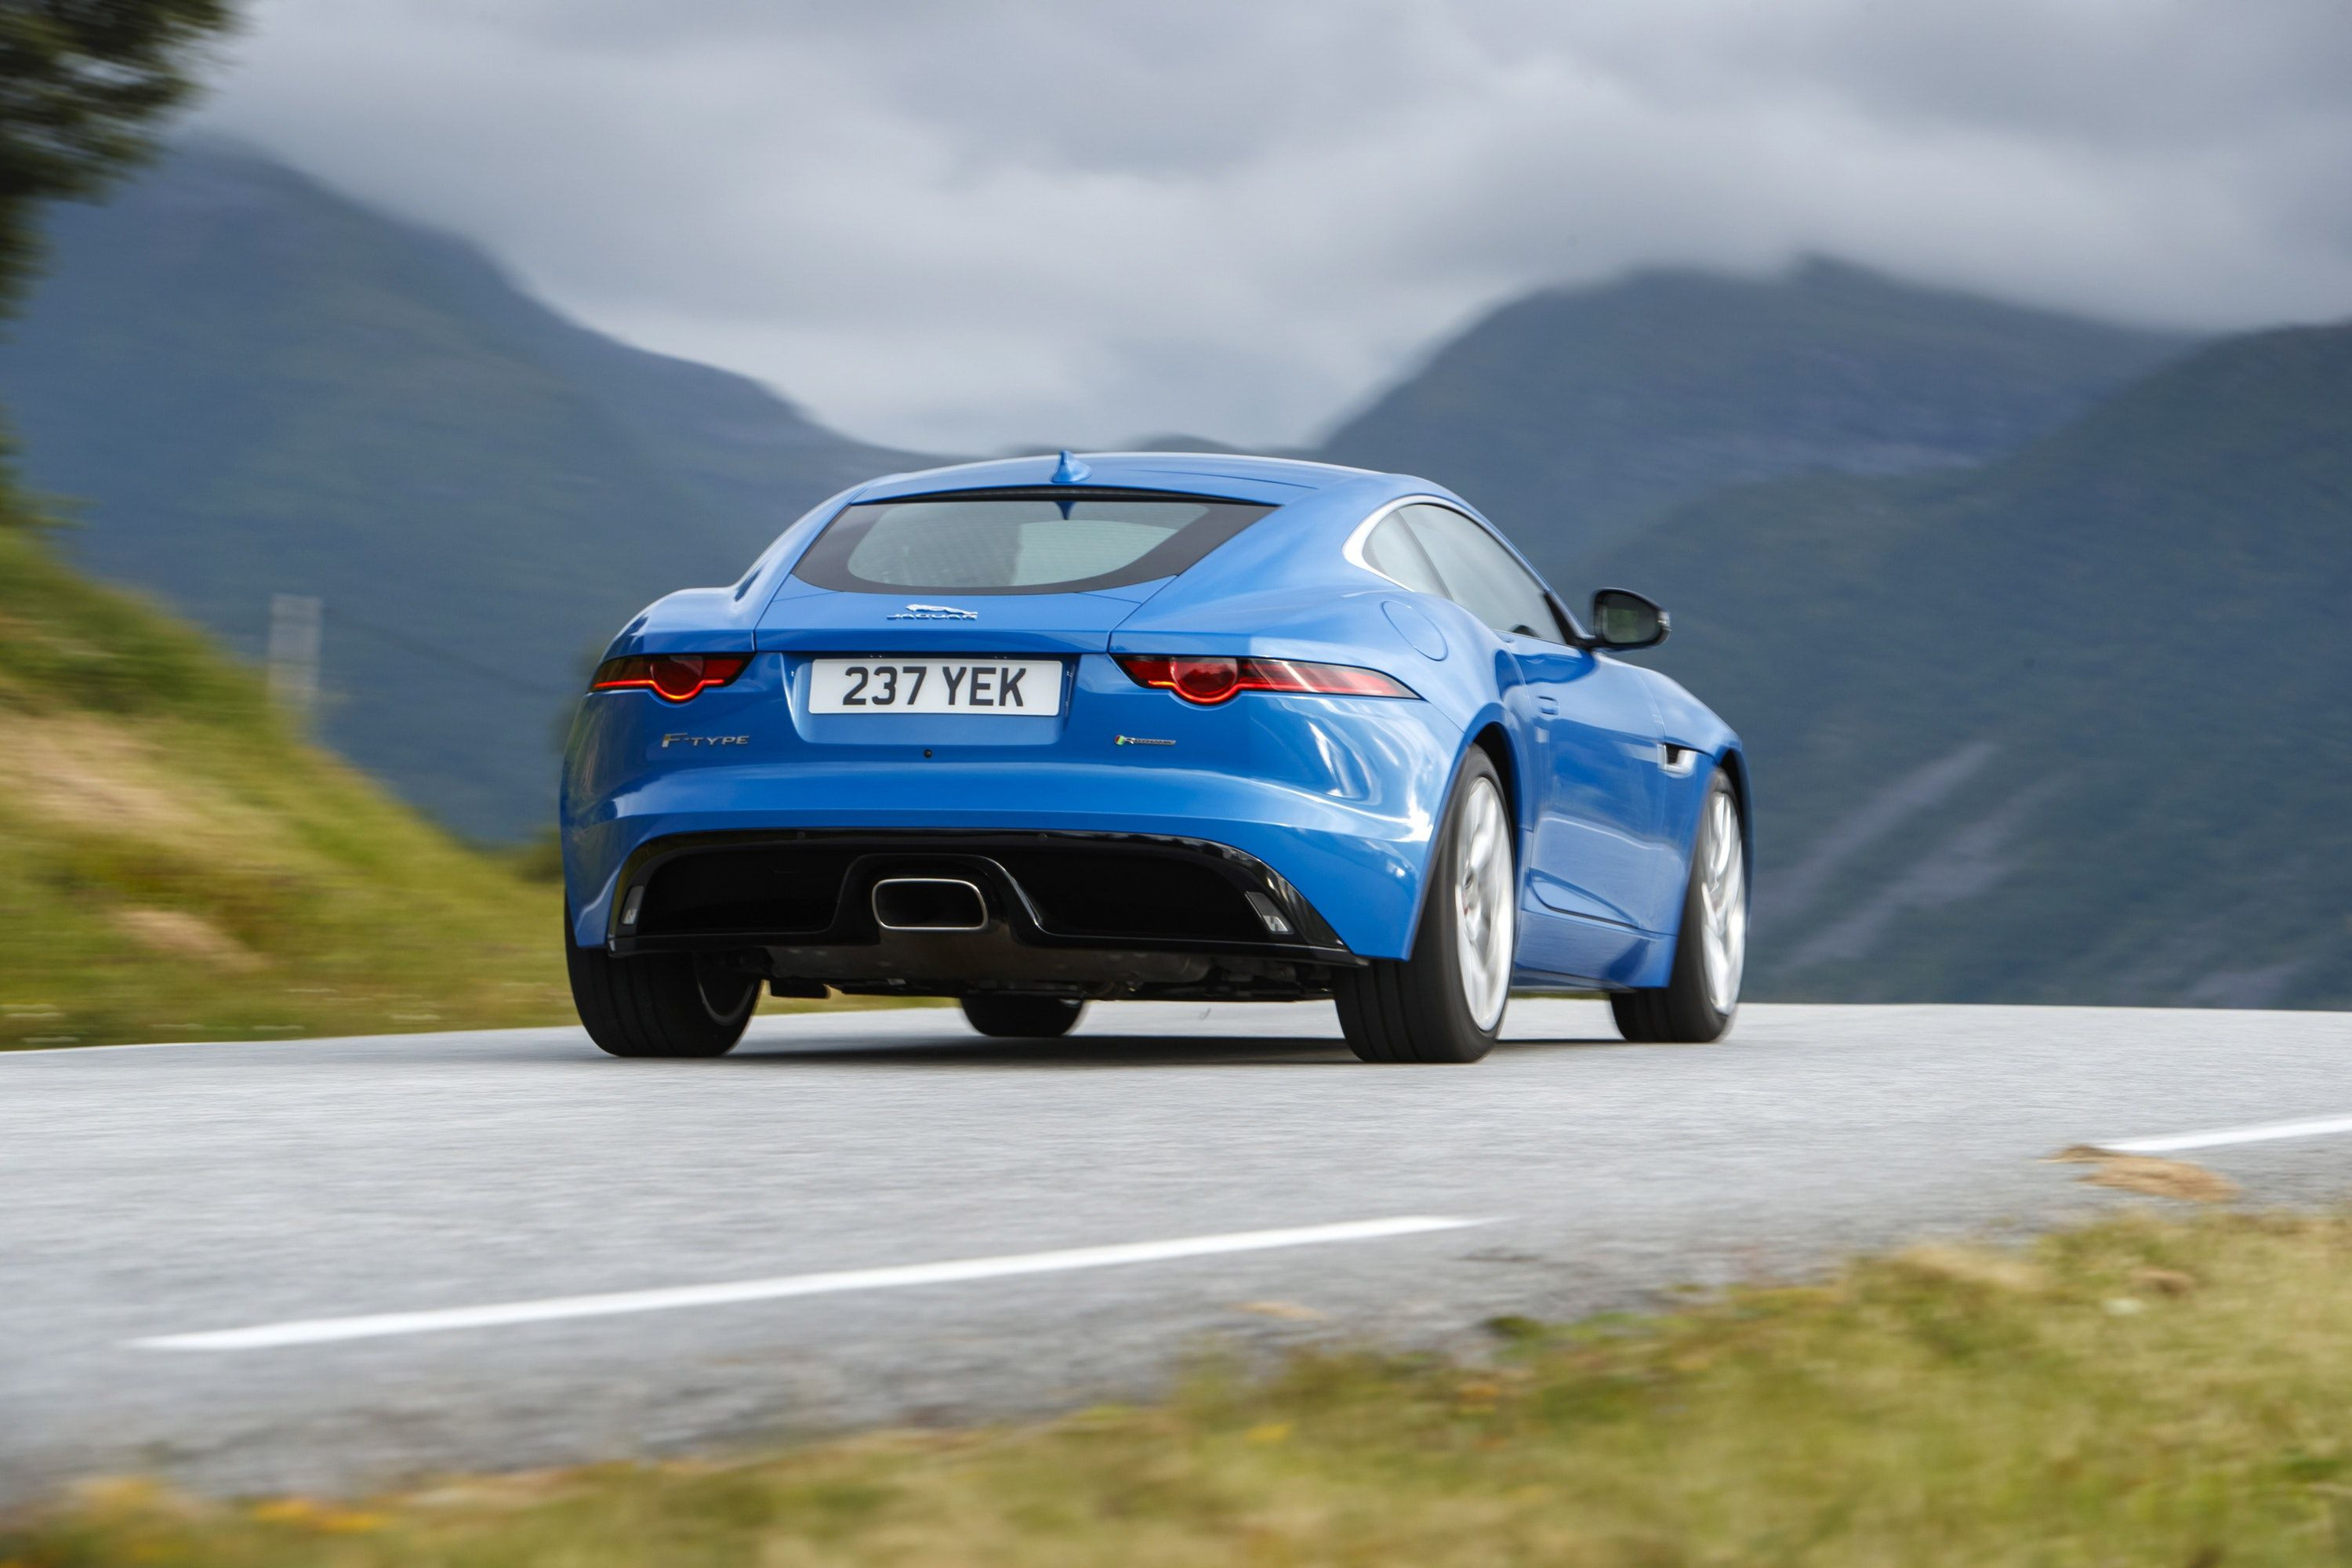 Jaguar F-Type from rear